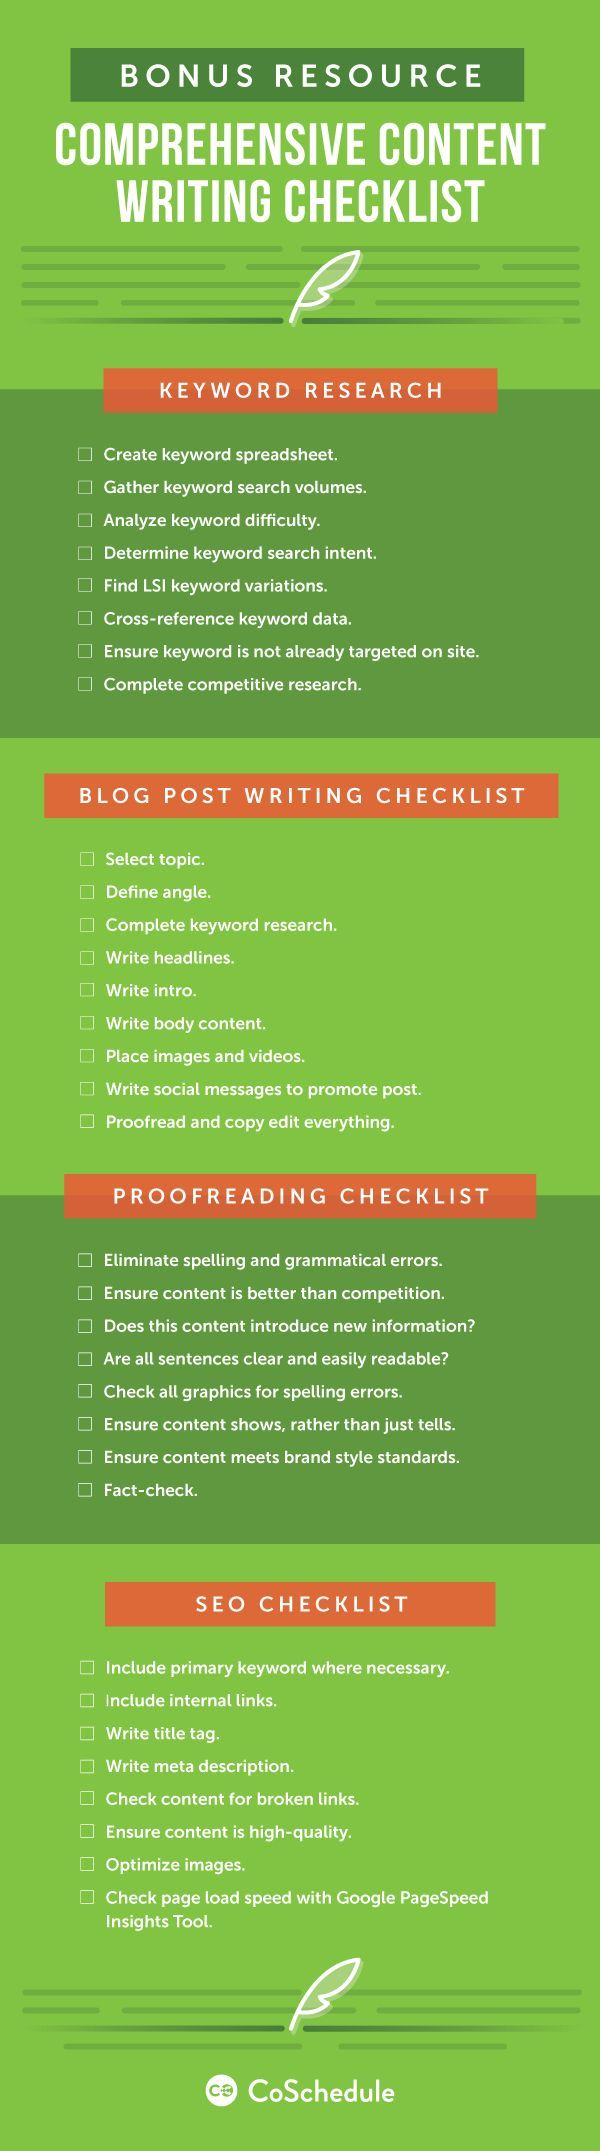 Get Your Free Content Writing Template Bundle! https://coschedule.com/blog/content-writing-tips/?utm_campaign=coschedule&utm_source=pinterest&utm_medium=CoSchedule&utm_content=40%20Content%20Writing%20Tips%20to%20Make%20You%20A%20Better%20Marketer%20Now